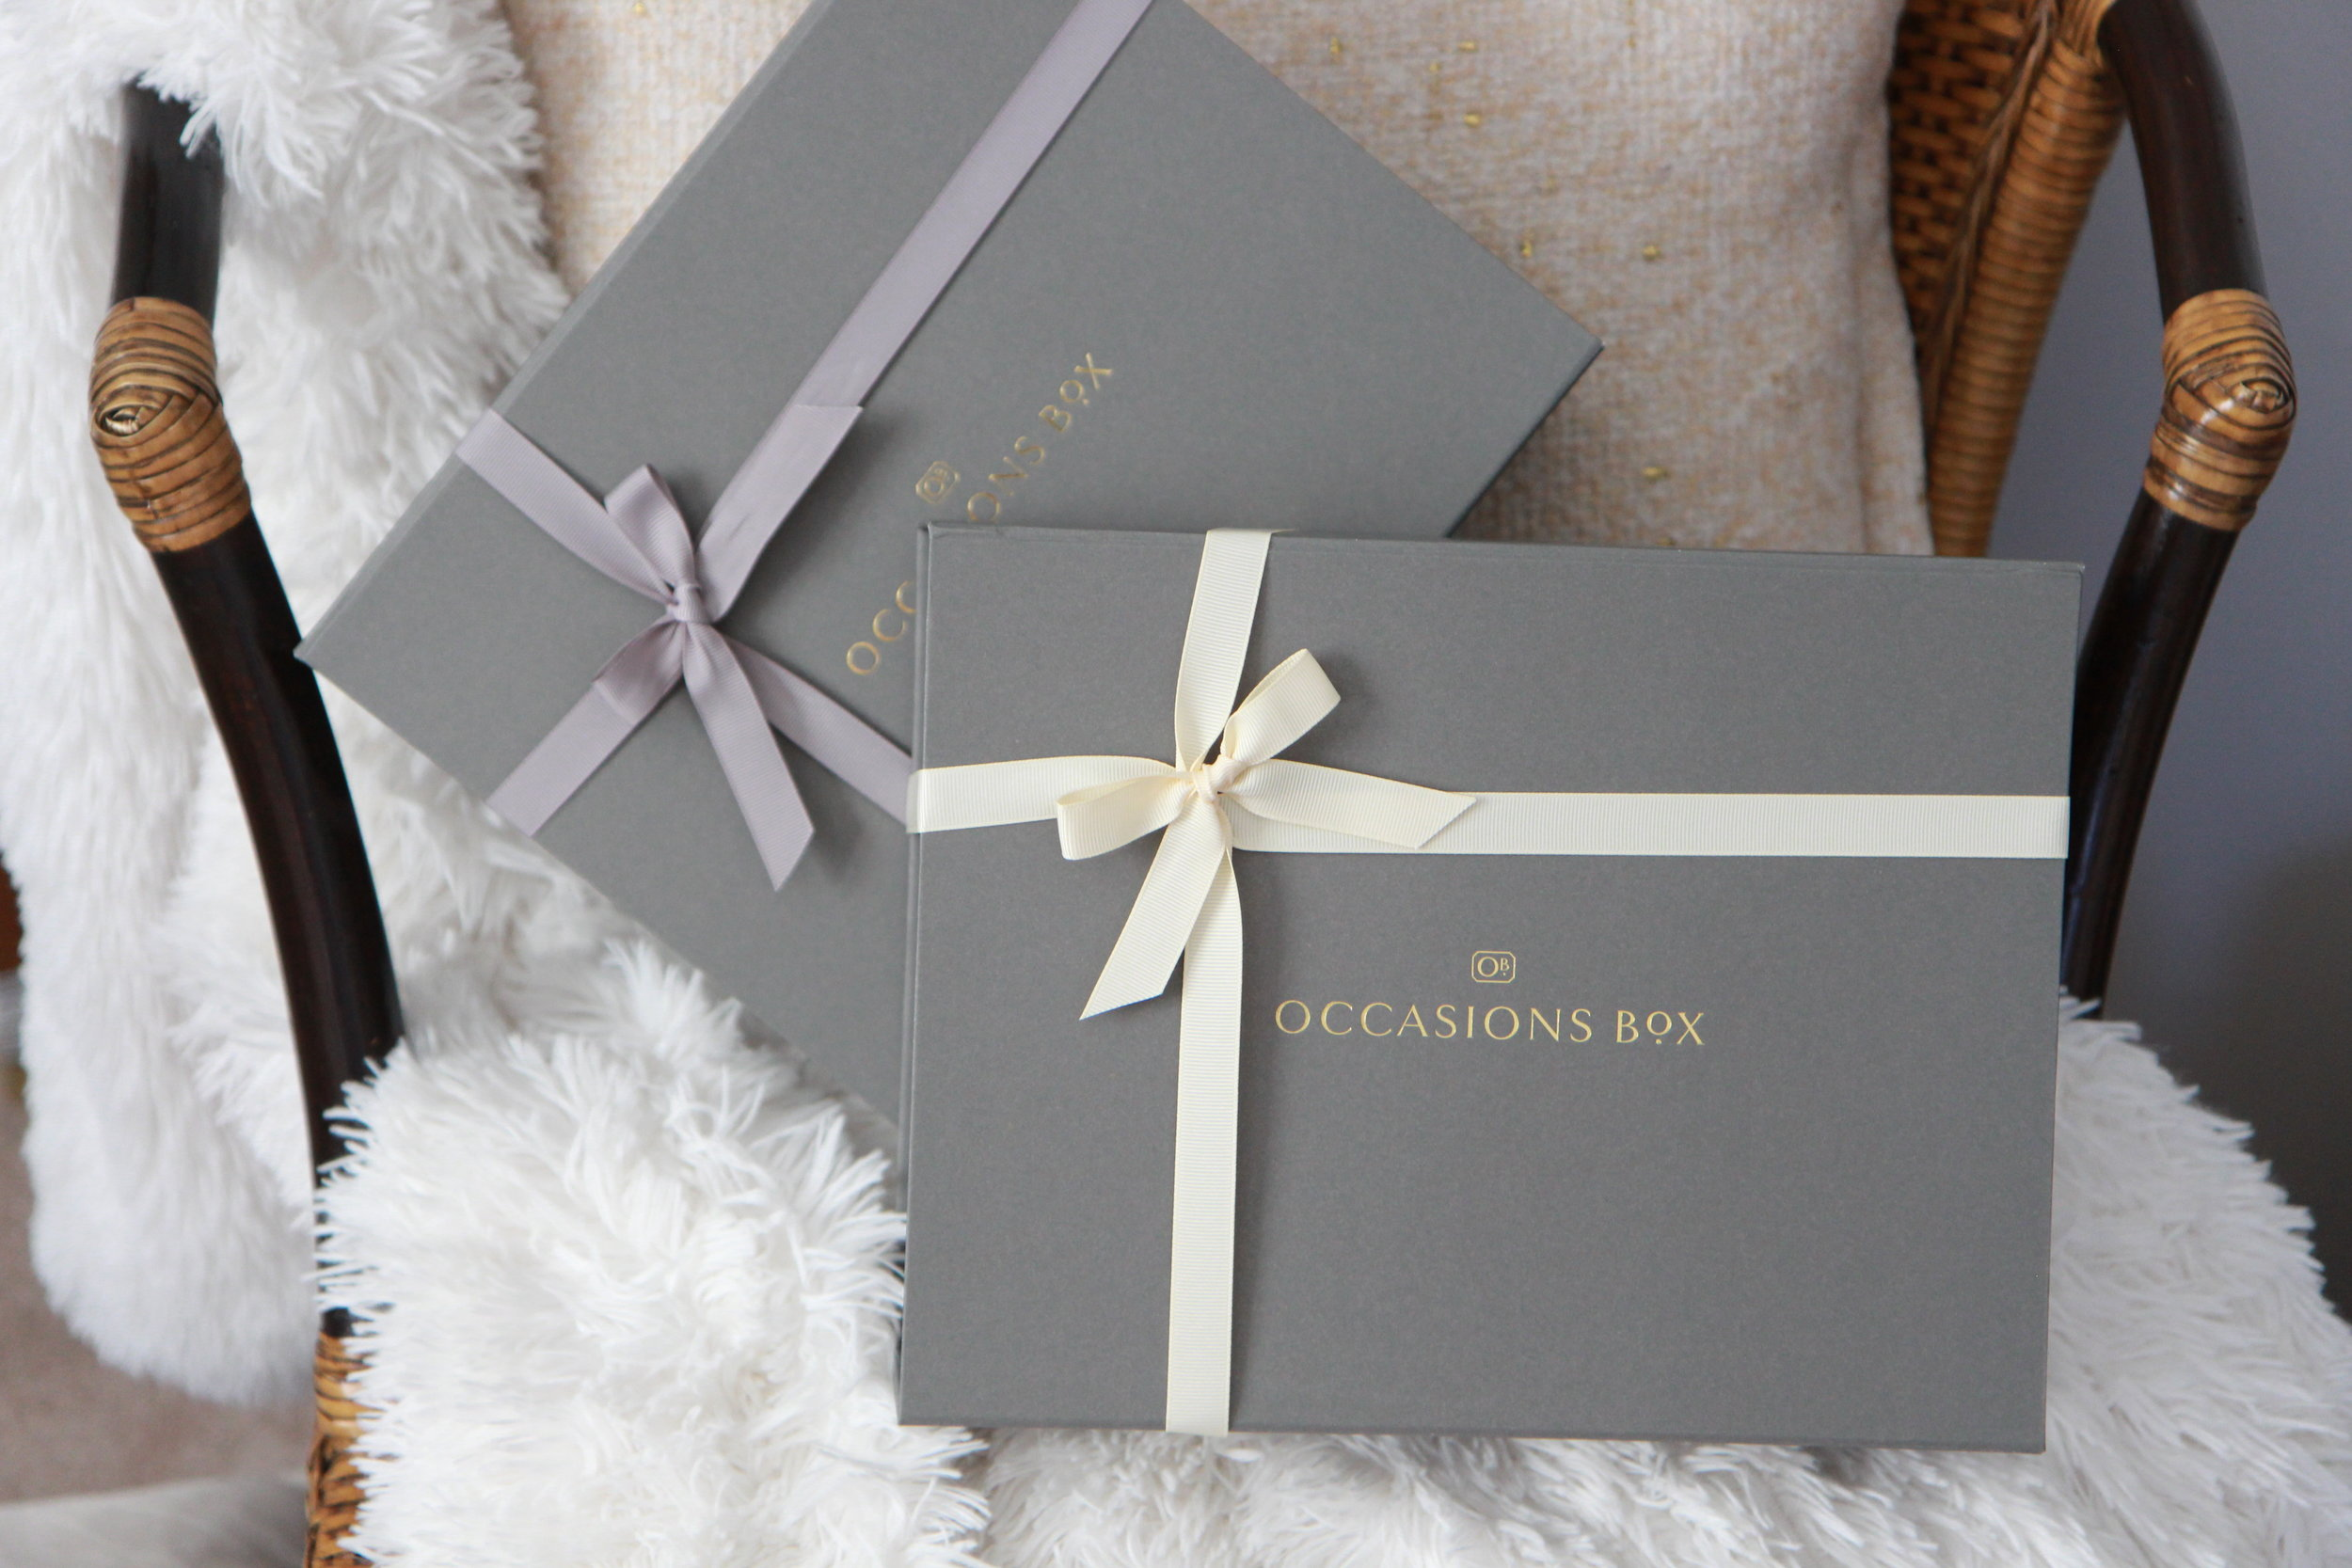 "About Us - At Occasions Box we make gift giving, extraordinary, effortless and most importantly meaningful. Our sophisticated gift boxes are thoughtfully curated with products that are distinctive, high in quality and finely customizable for any occasion. Our exquisite grey boxes are beautifully packaged to make a statement. They are delicately dressed with tissue paper, detailed with a satin ribbon and includes an optional handwritten note as our final personal touch. We pride ourselves in selecting, gathering and presenting an unforgettable gift that is certain to deliver a special kind of happiness to both the giver and the receiver.We also love to give back! It is our intention to make a difference in the world via our philanthropic endeavors. With every purchase we give back toward children's education or children's medical research, that is why we proudly stand by our motto, ""The box that keeps on giving."""